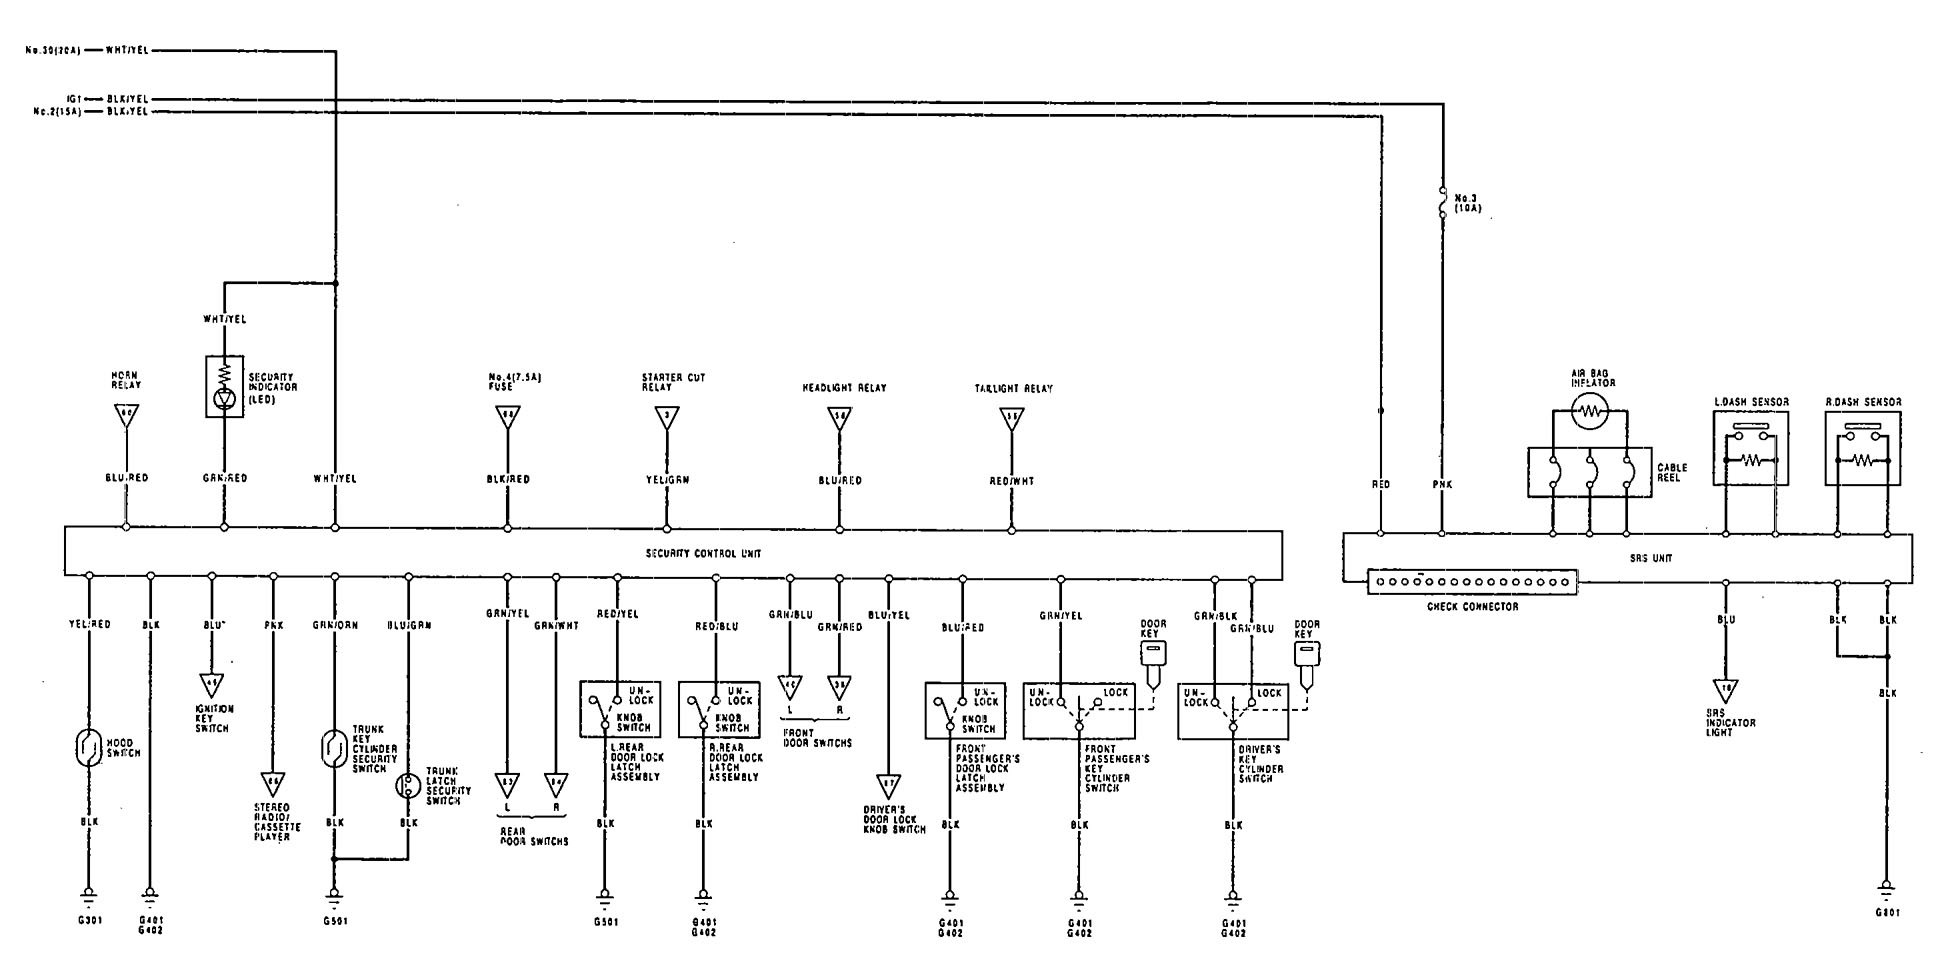 Acura Vigor Fuse Diagram Circuit Connection Diagram \u2022 Acura Integra  Fuse Diagram 92 Acura Vigor Fuse Box Diagram